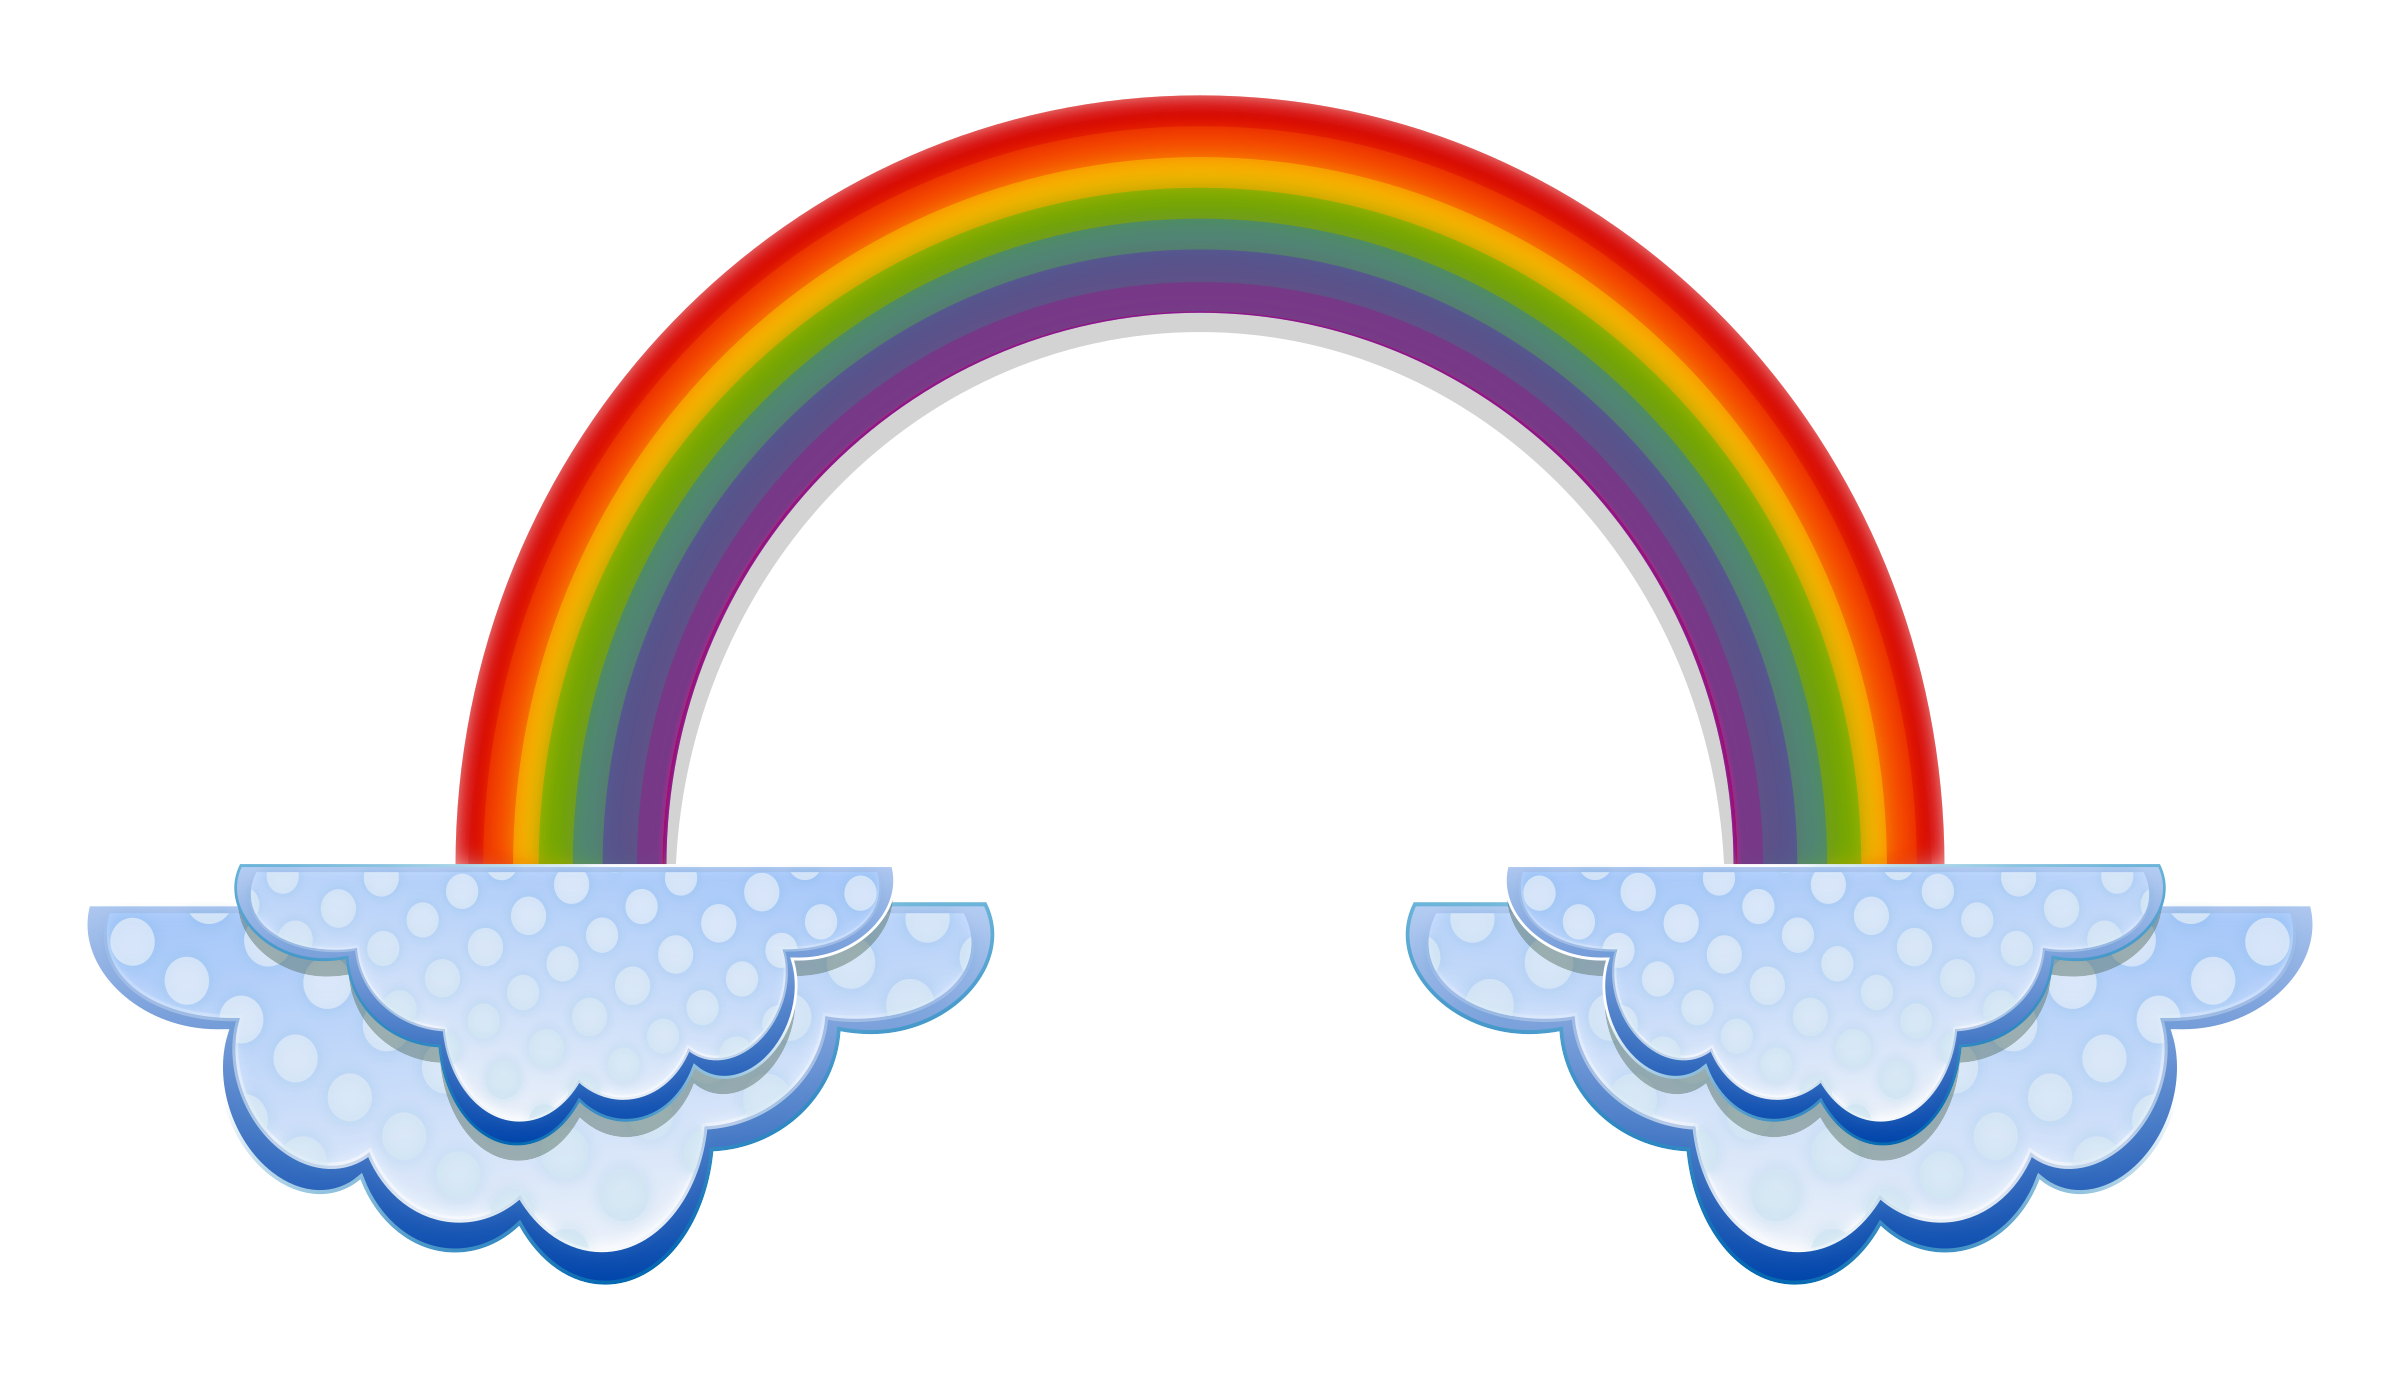 2400x1380 Rainbow Clouds Clipart Image